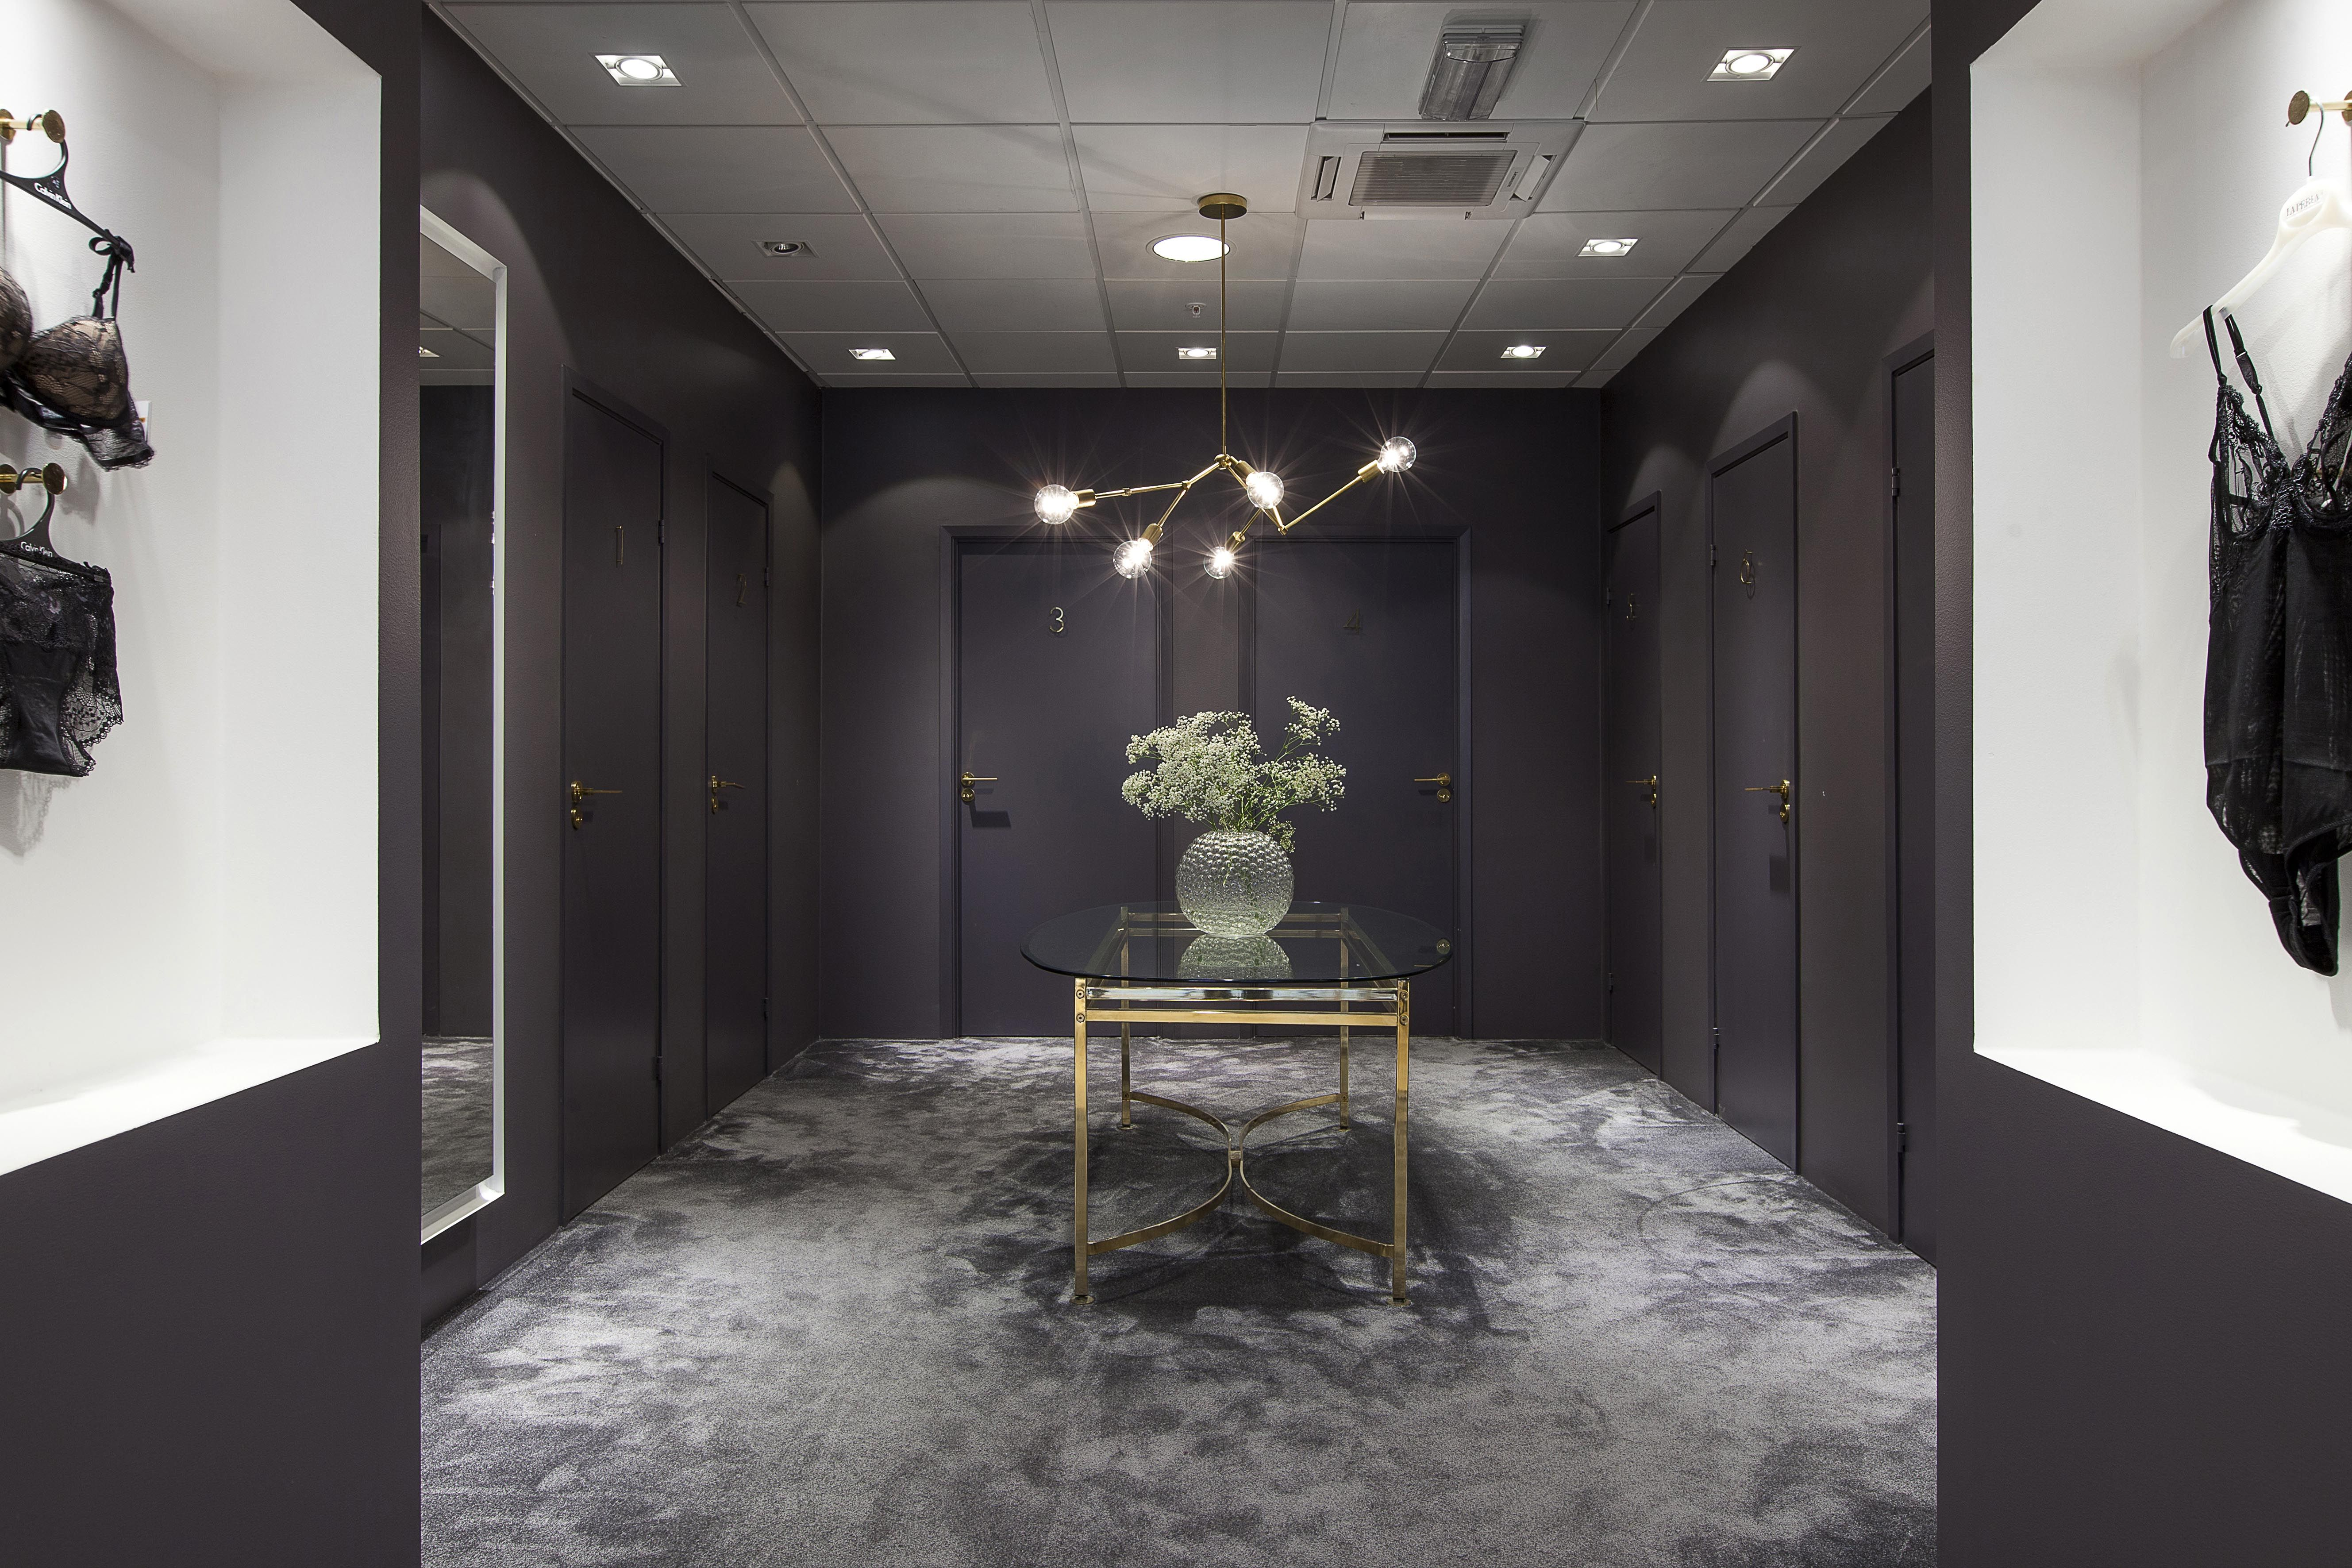 Bäccman & Berglund Sweden handles in brass at the new lingerie shop Bare Philosophy designed by Norwegian Code Concept.